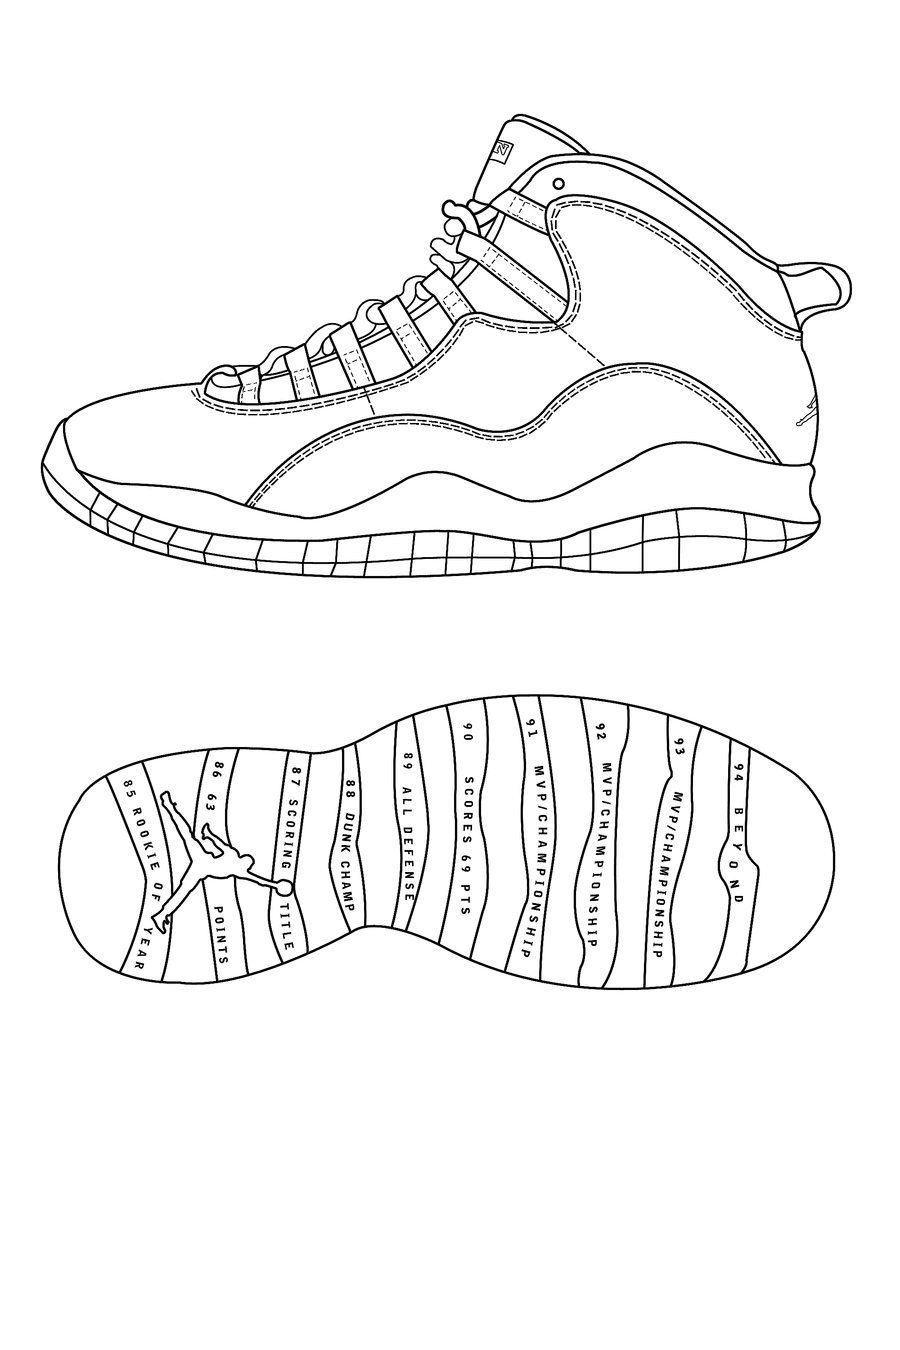 Sneaker Design Lesson Plan // Careers in the Arts Air